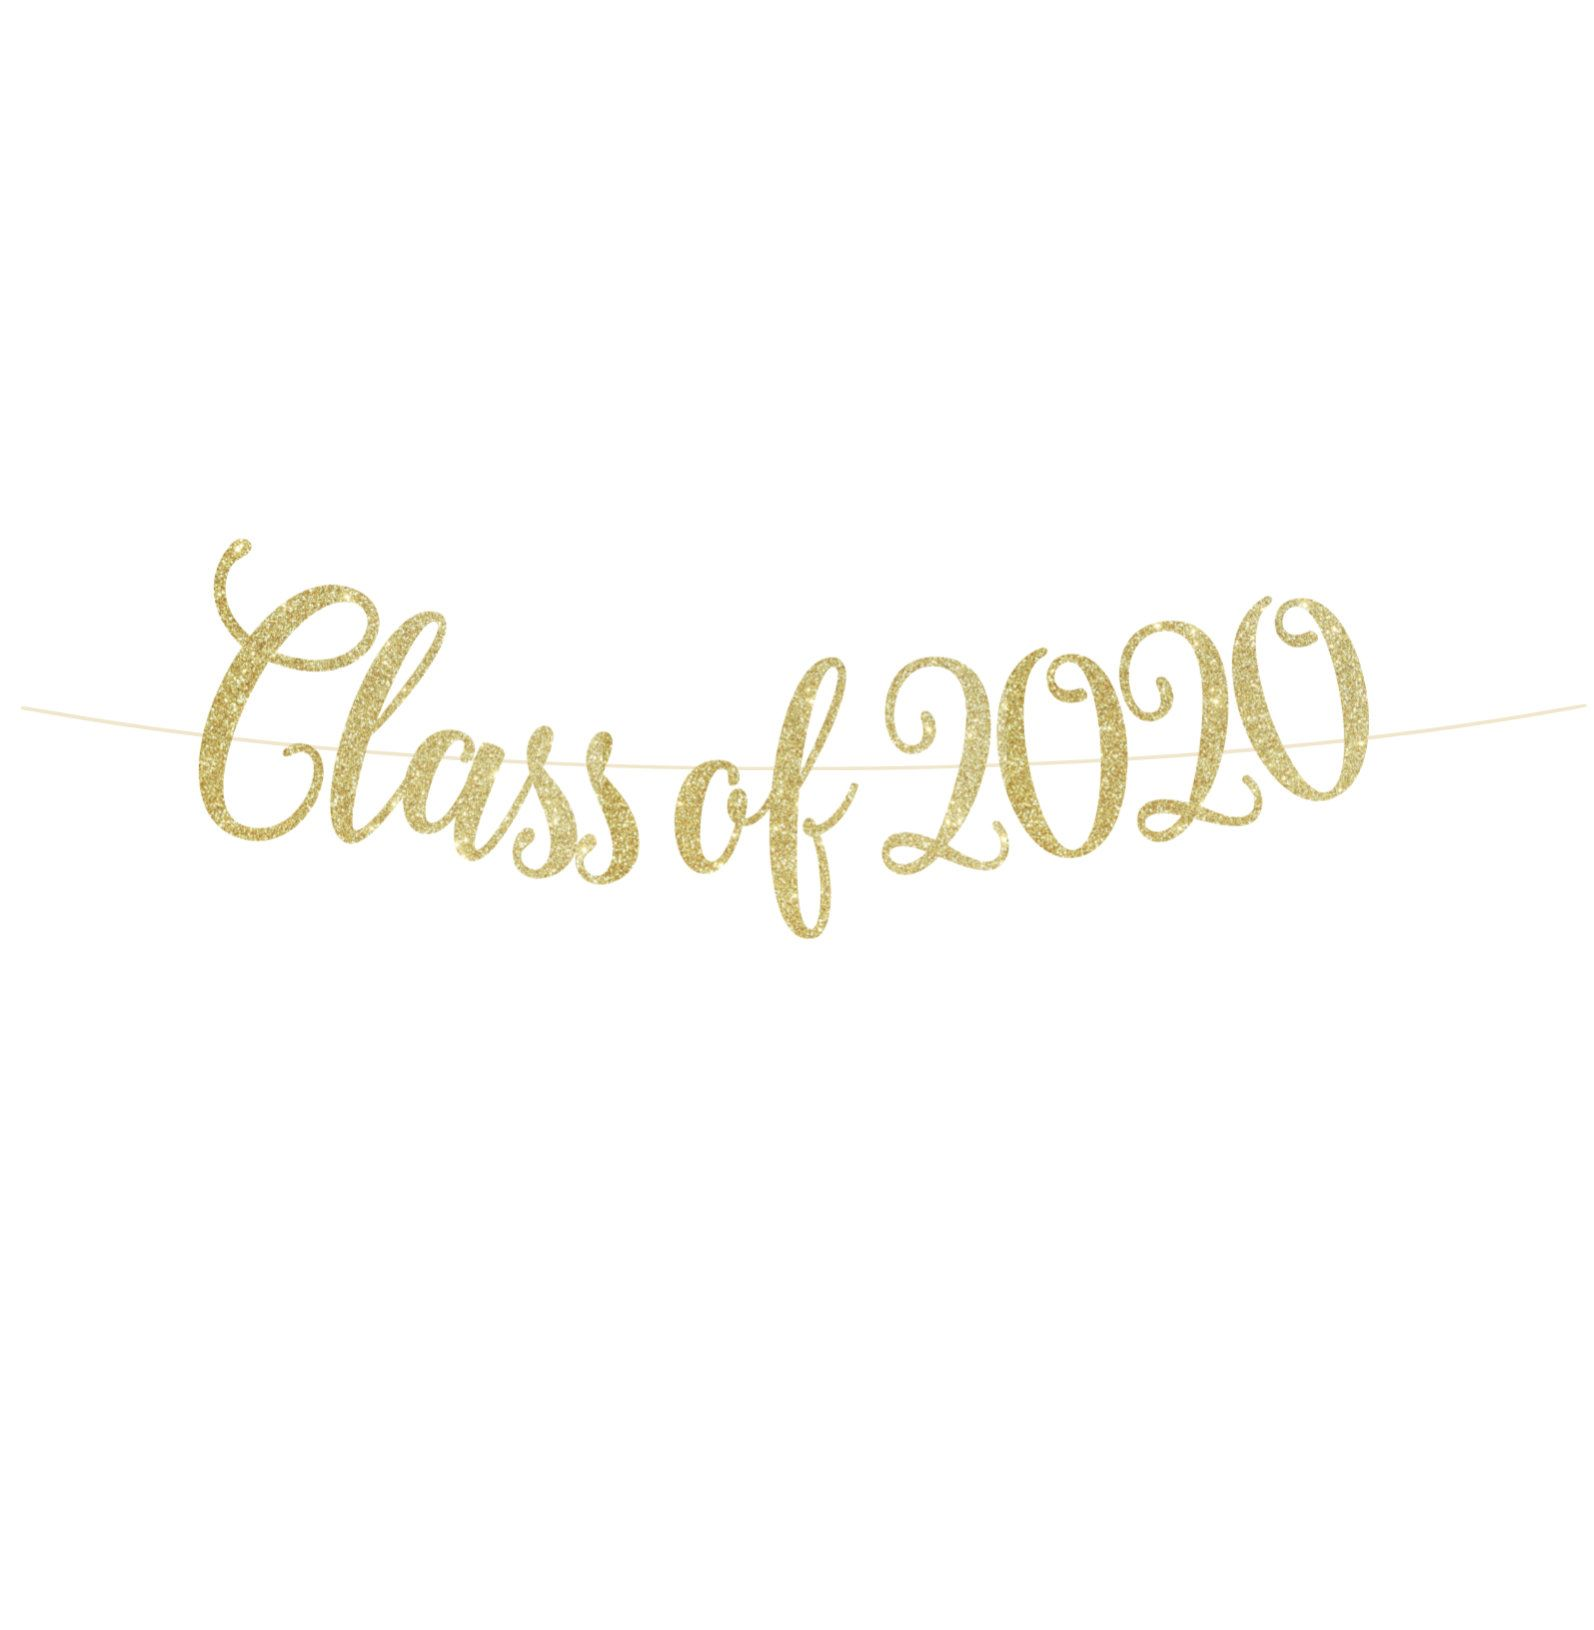 Kindergarten Class of 2020 Graduation Banner Personalized Party Backdrop